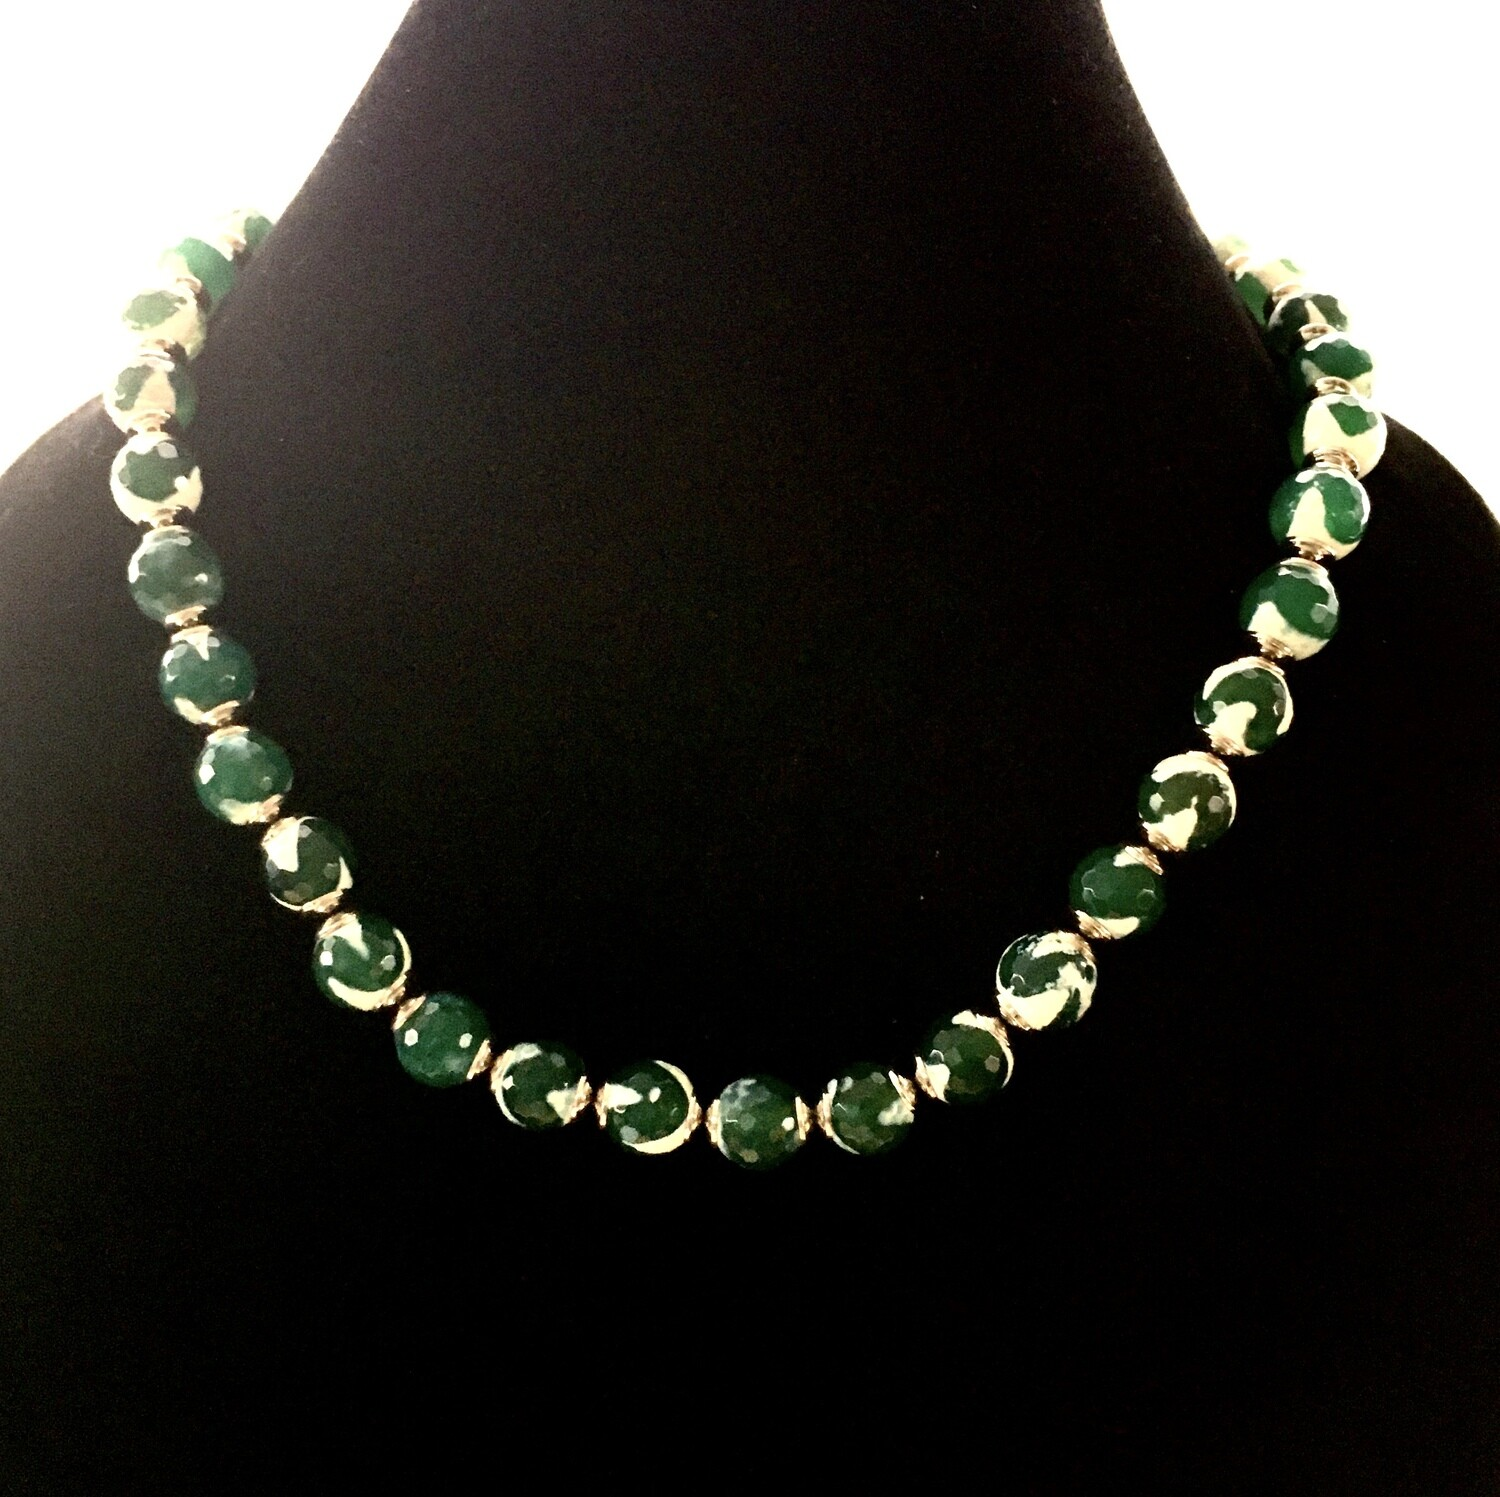 Green/white agate necklace